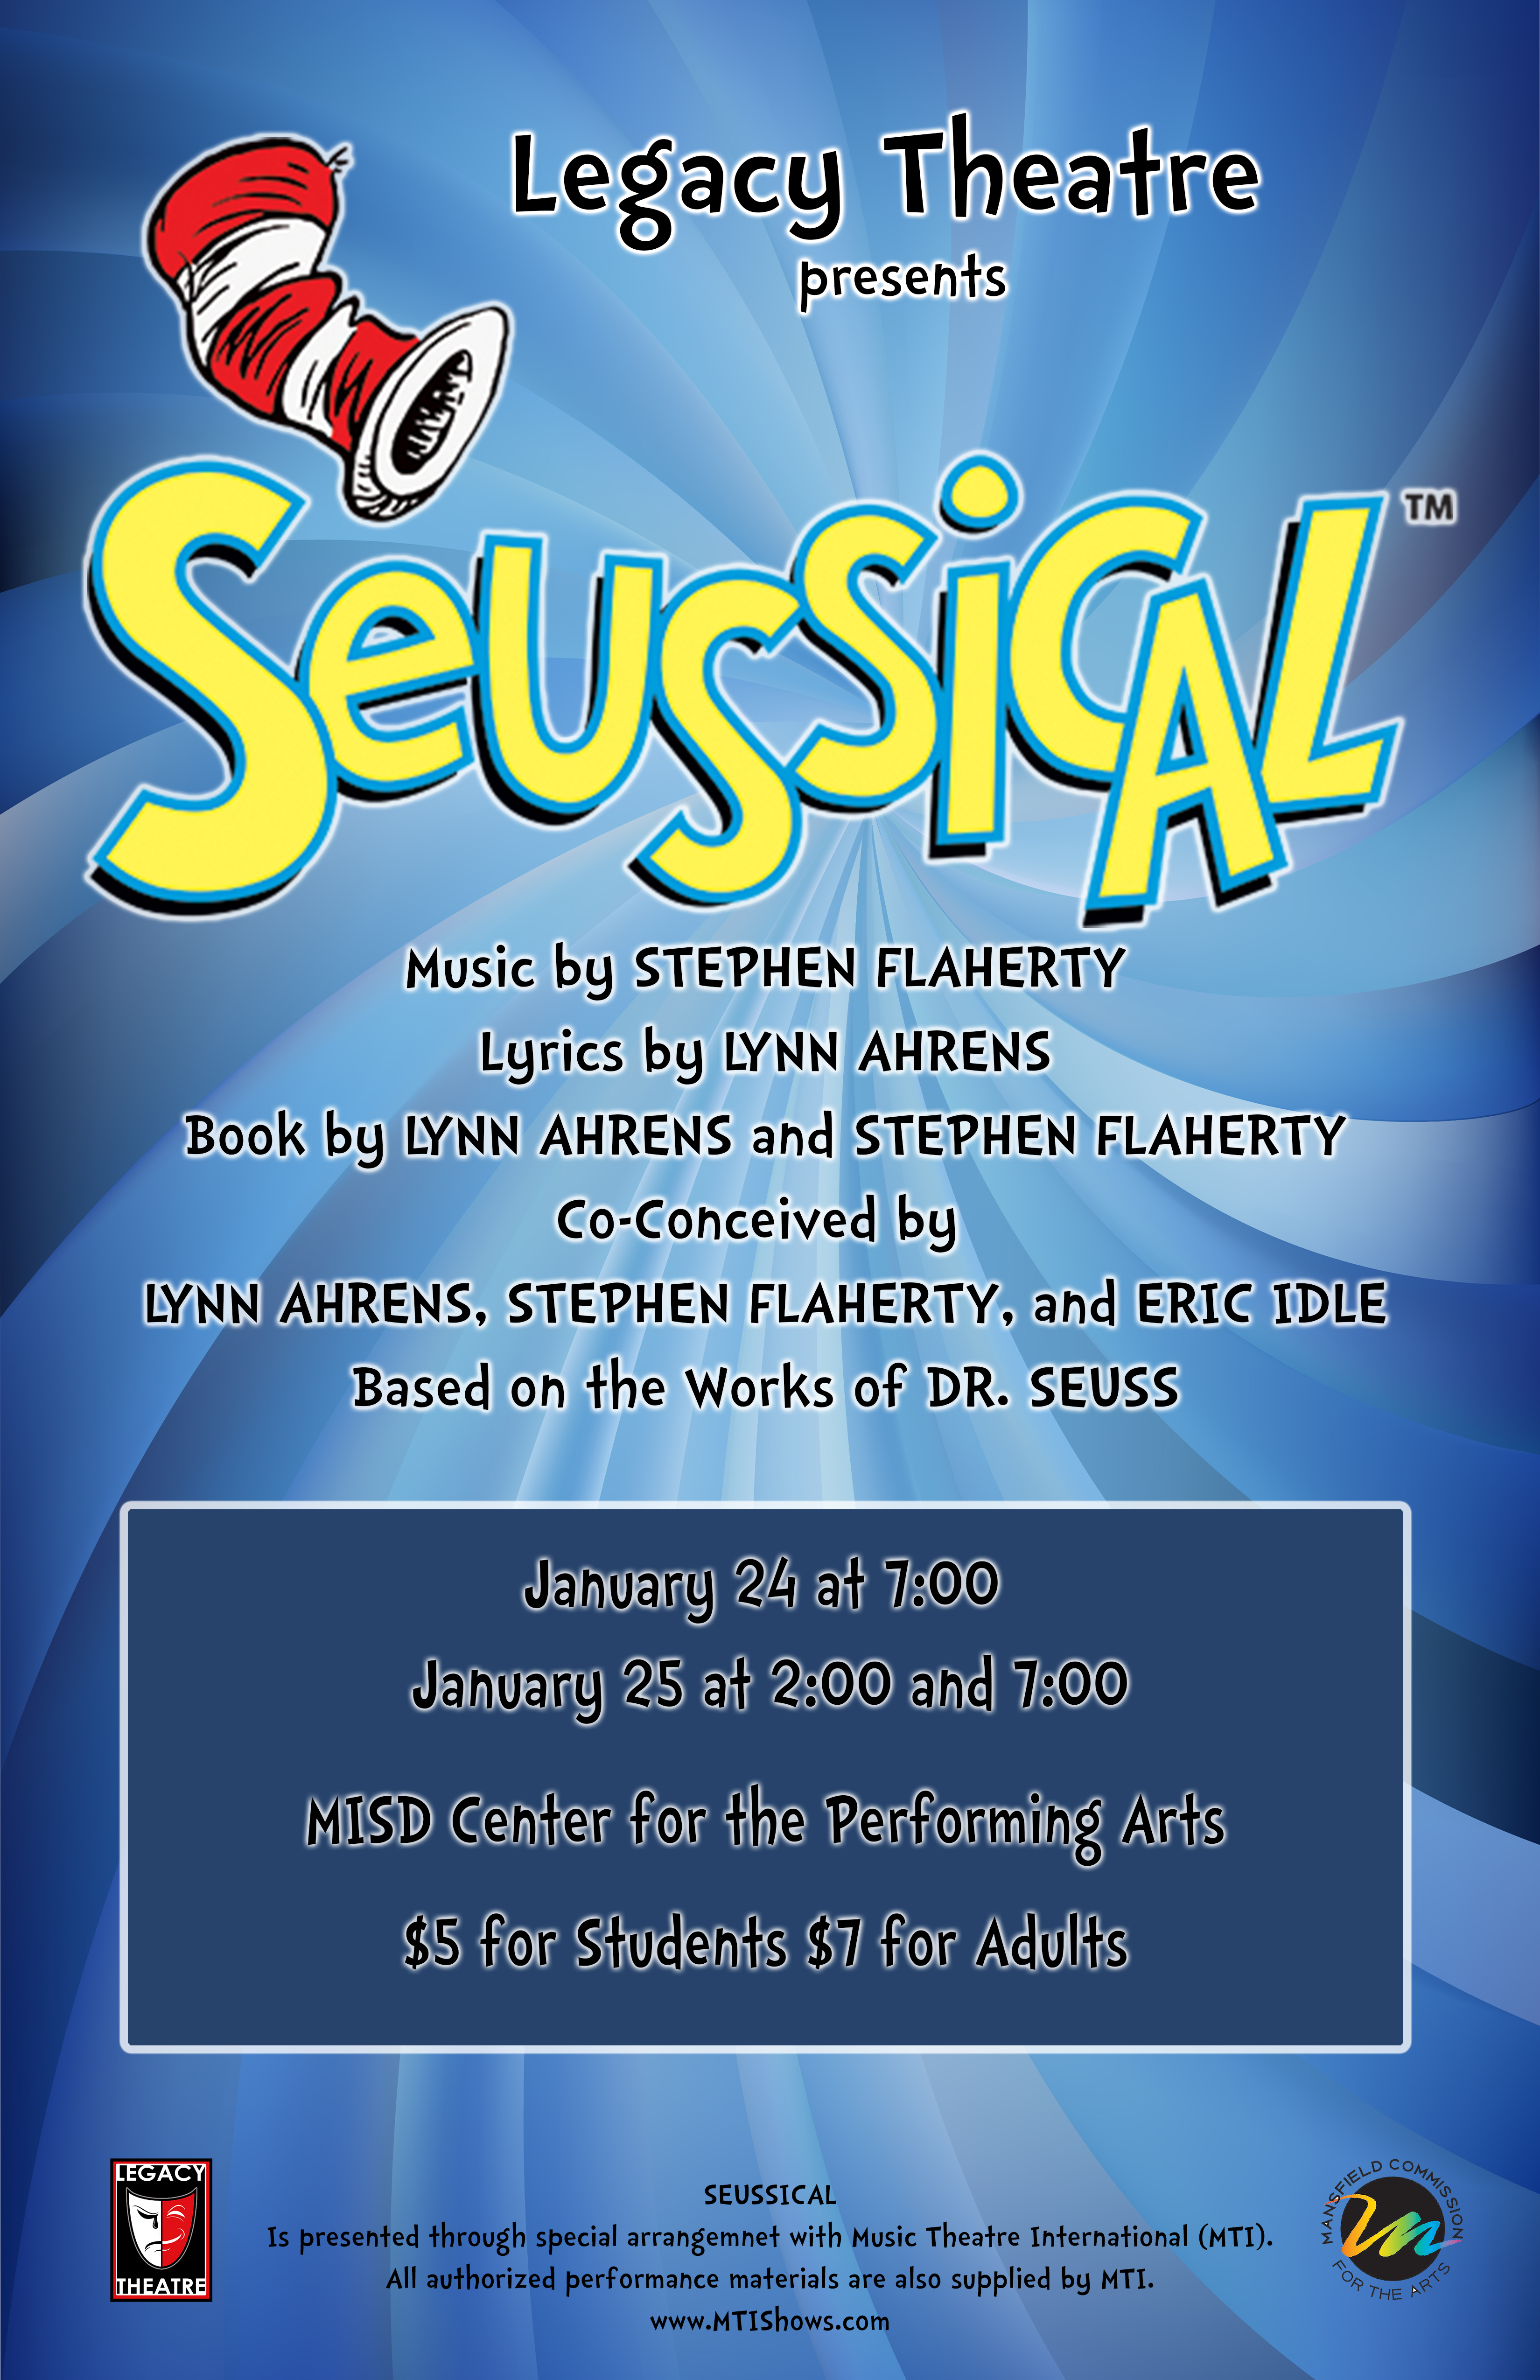 Legacy Theatre presents Seussical